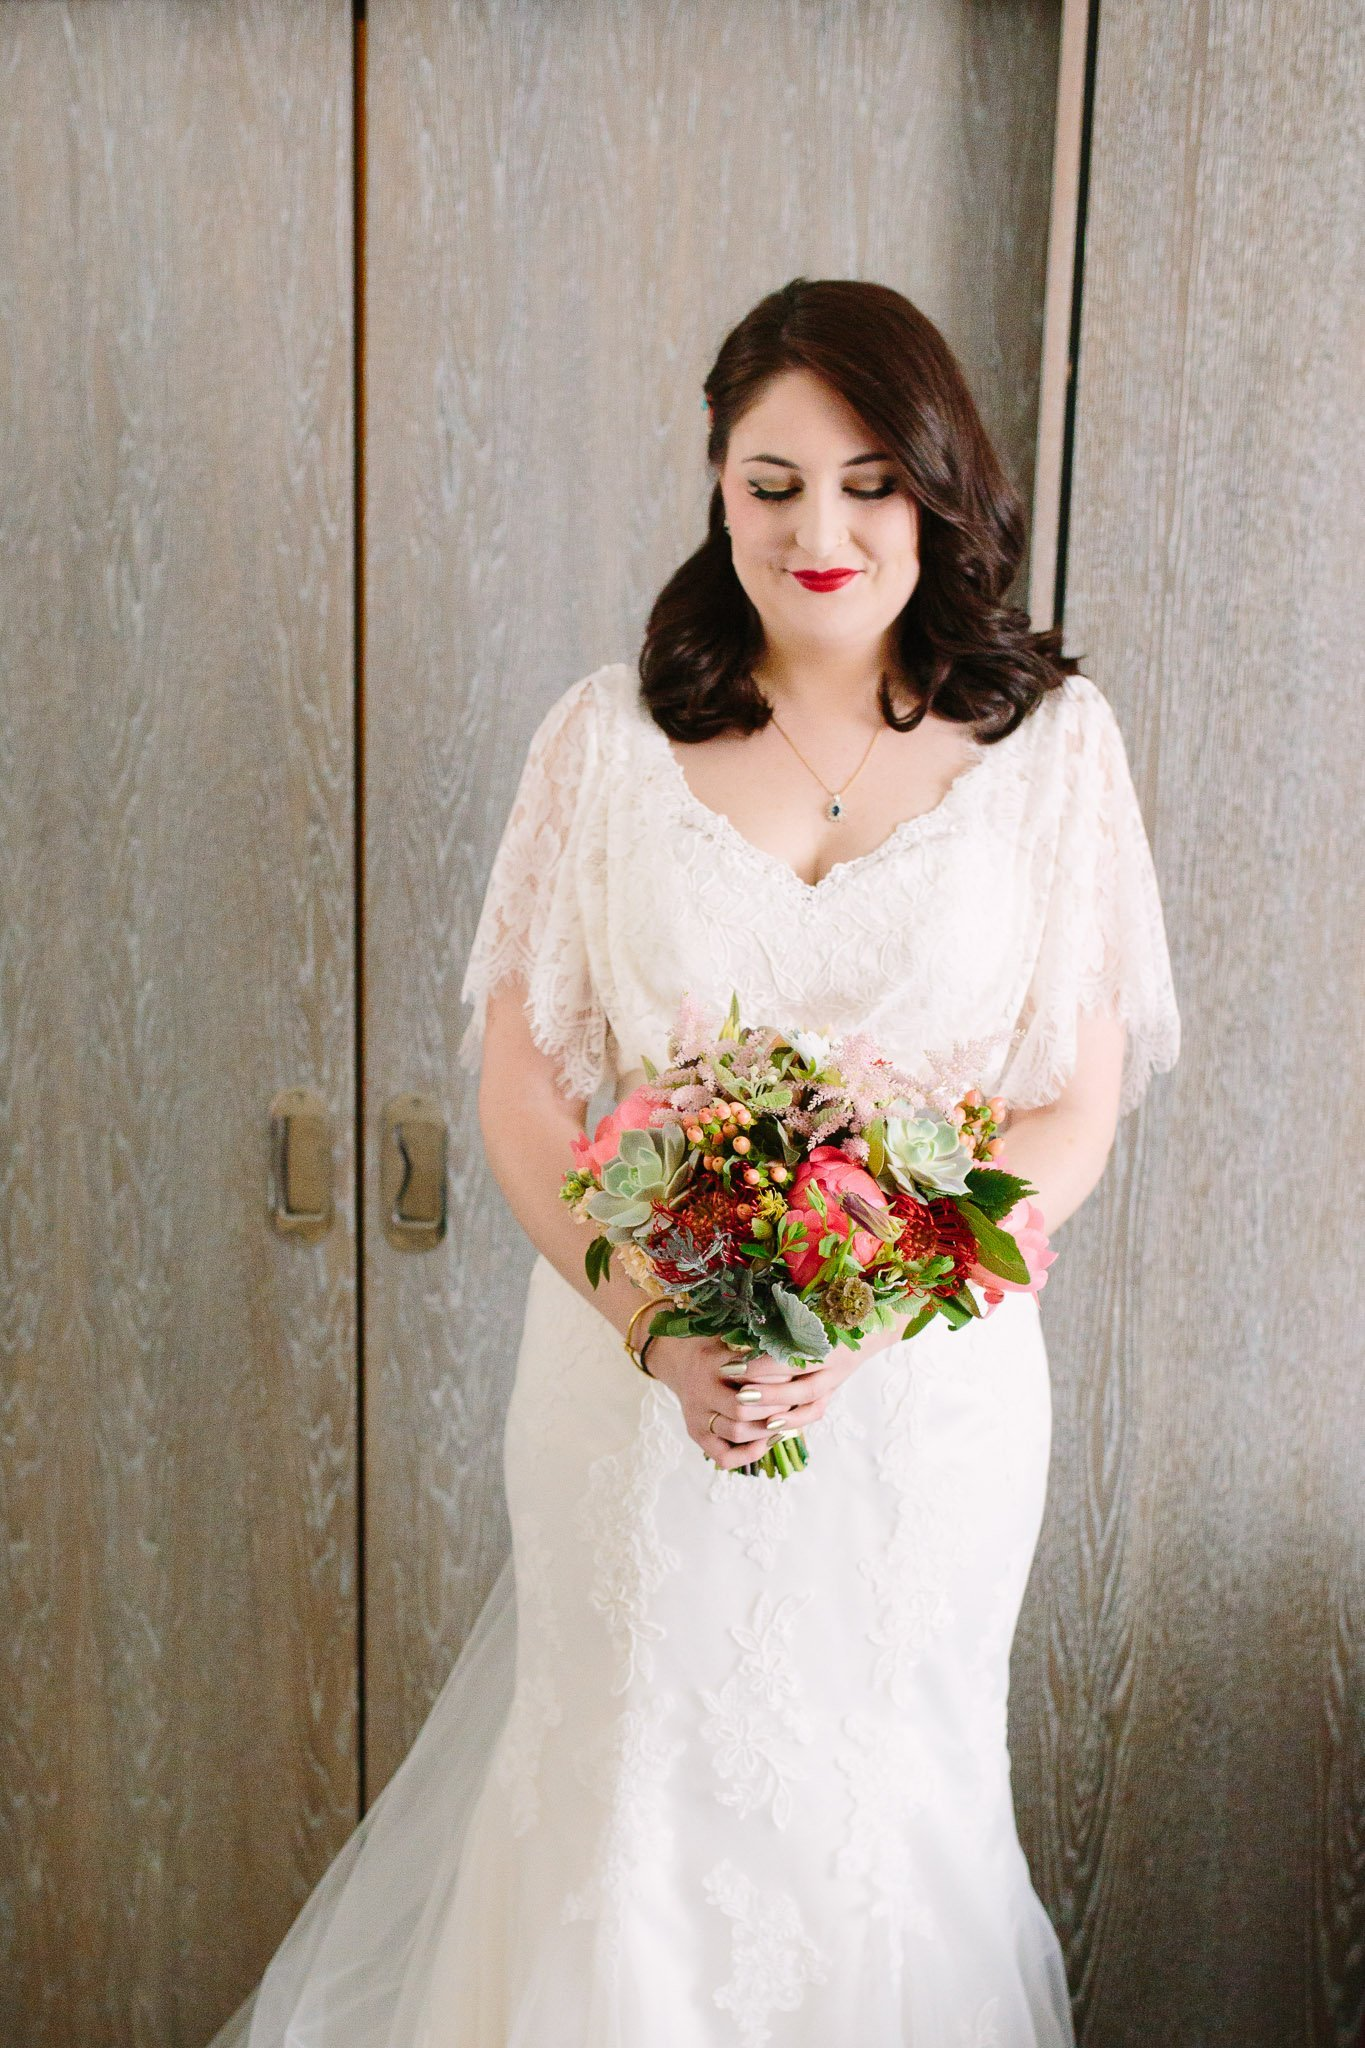 Portrait of bride in wedding dress holding bouquet at Hilton Hotel Angel Islington